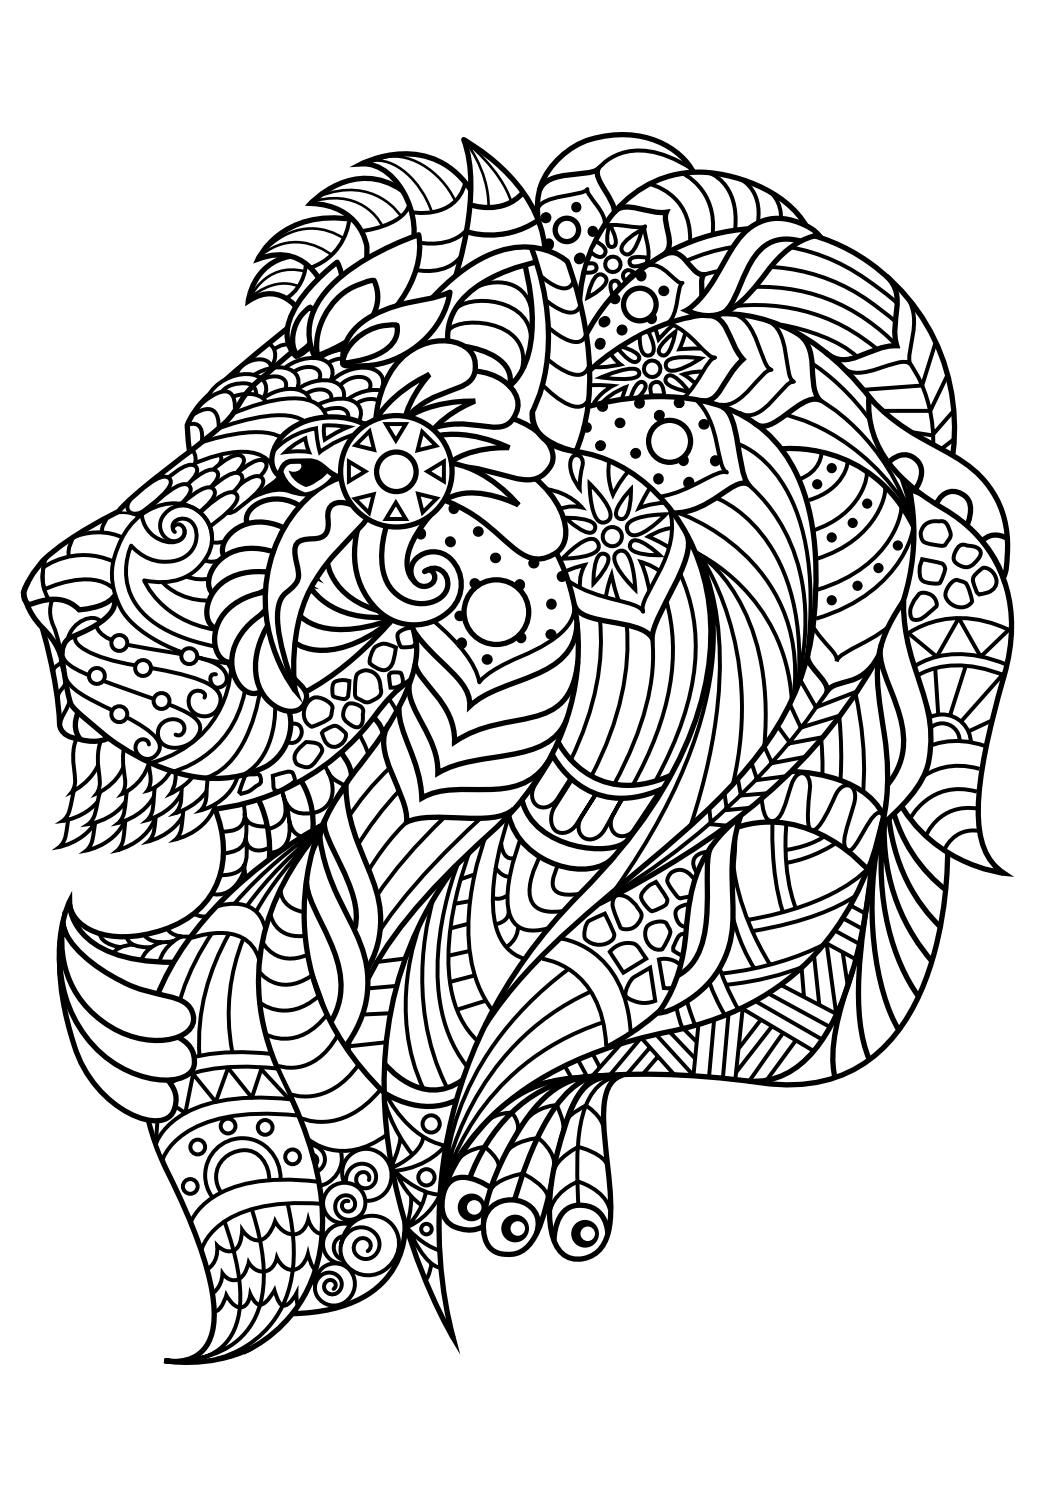 Animal Coloring Pages Pdf - Animals Adult Lion